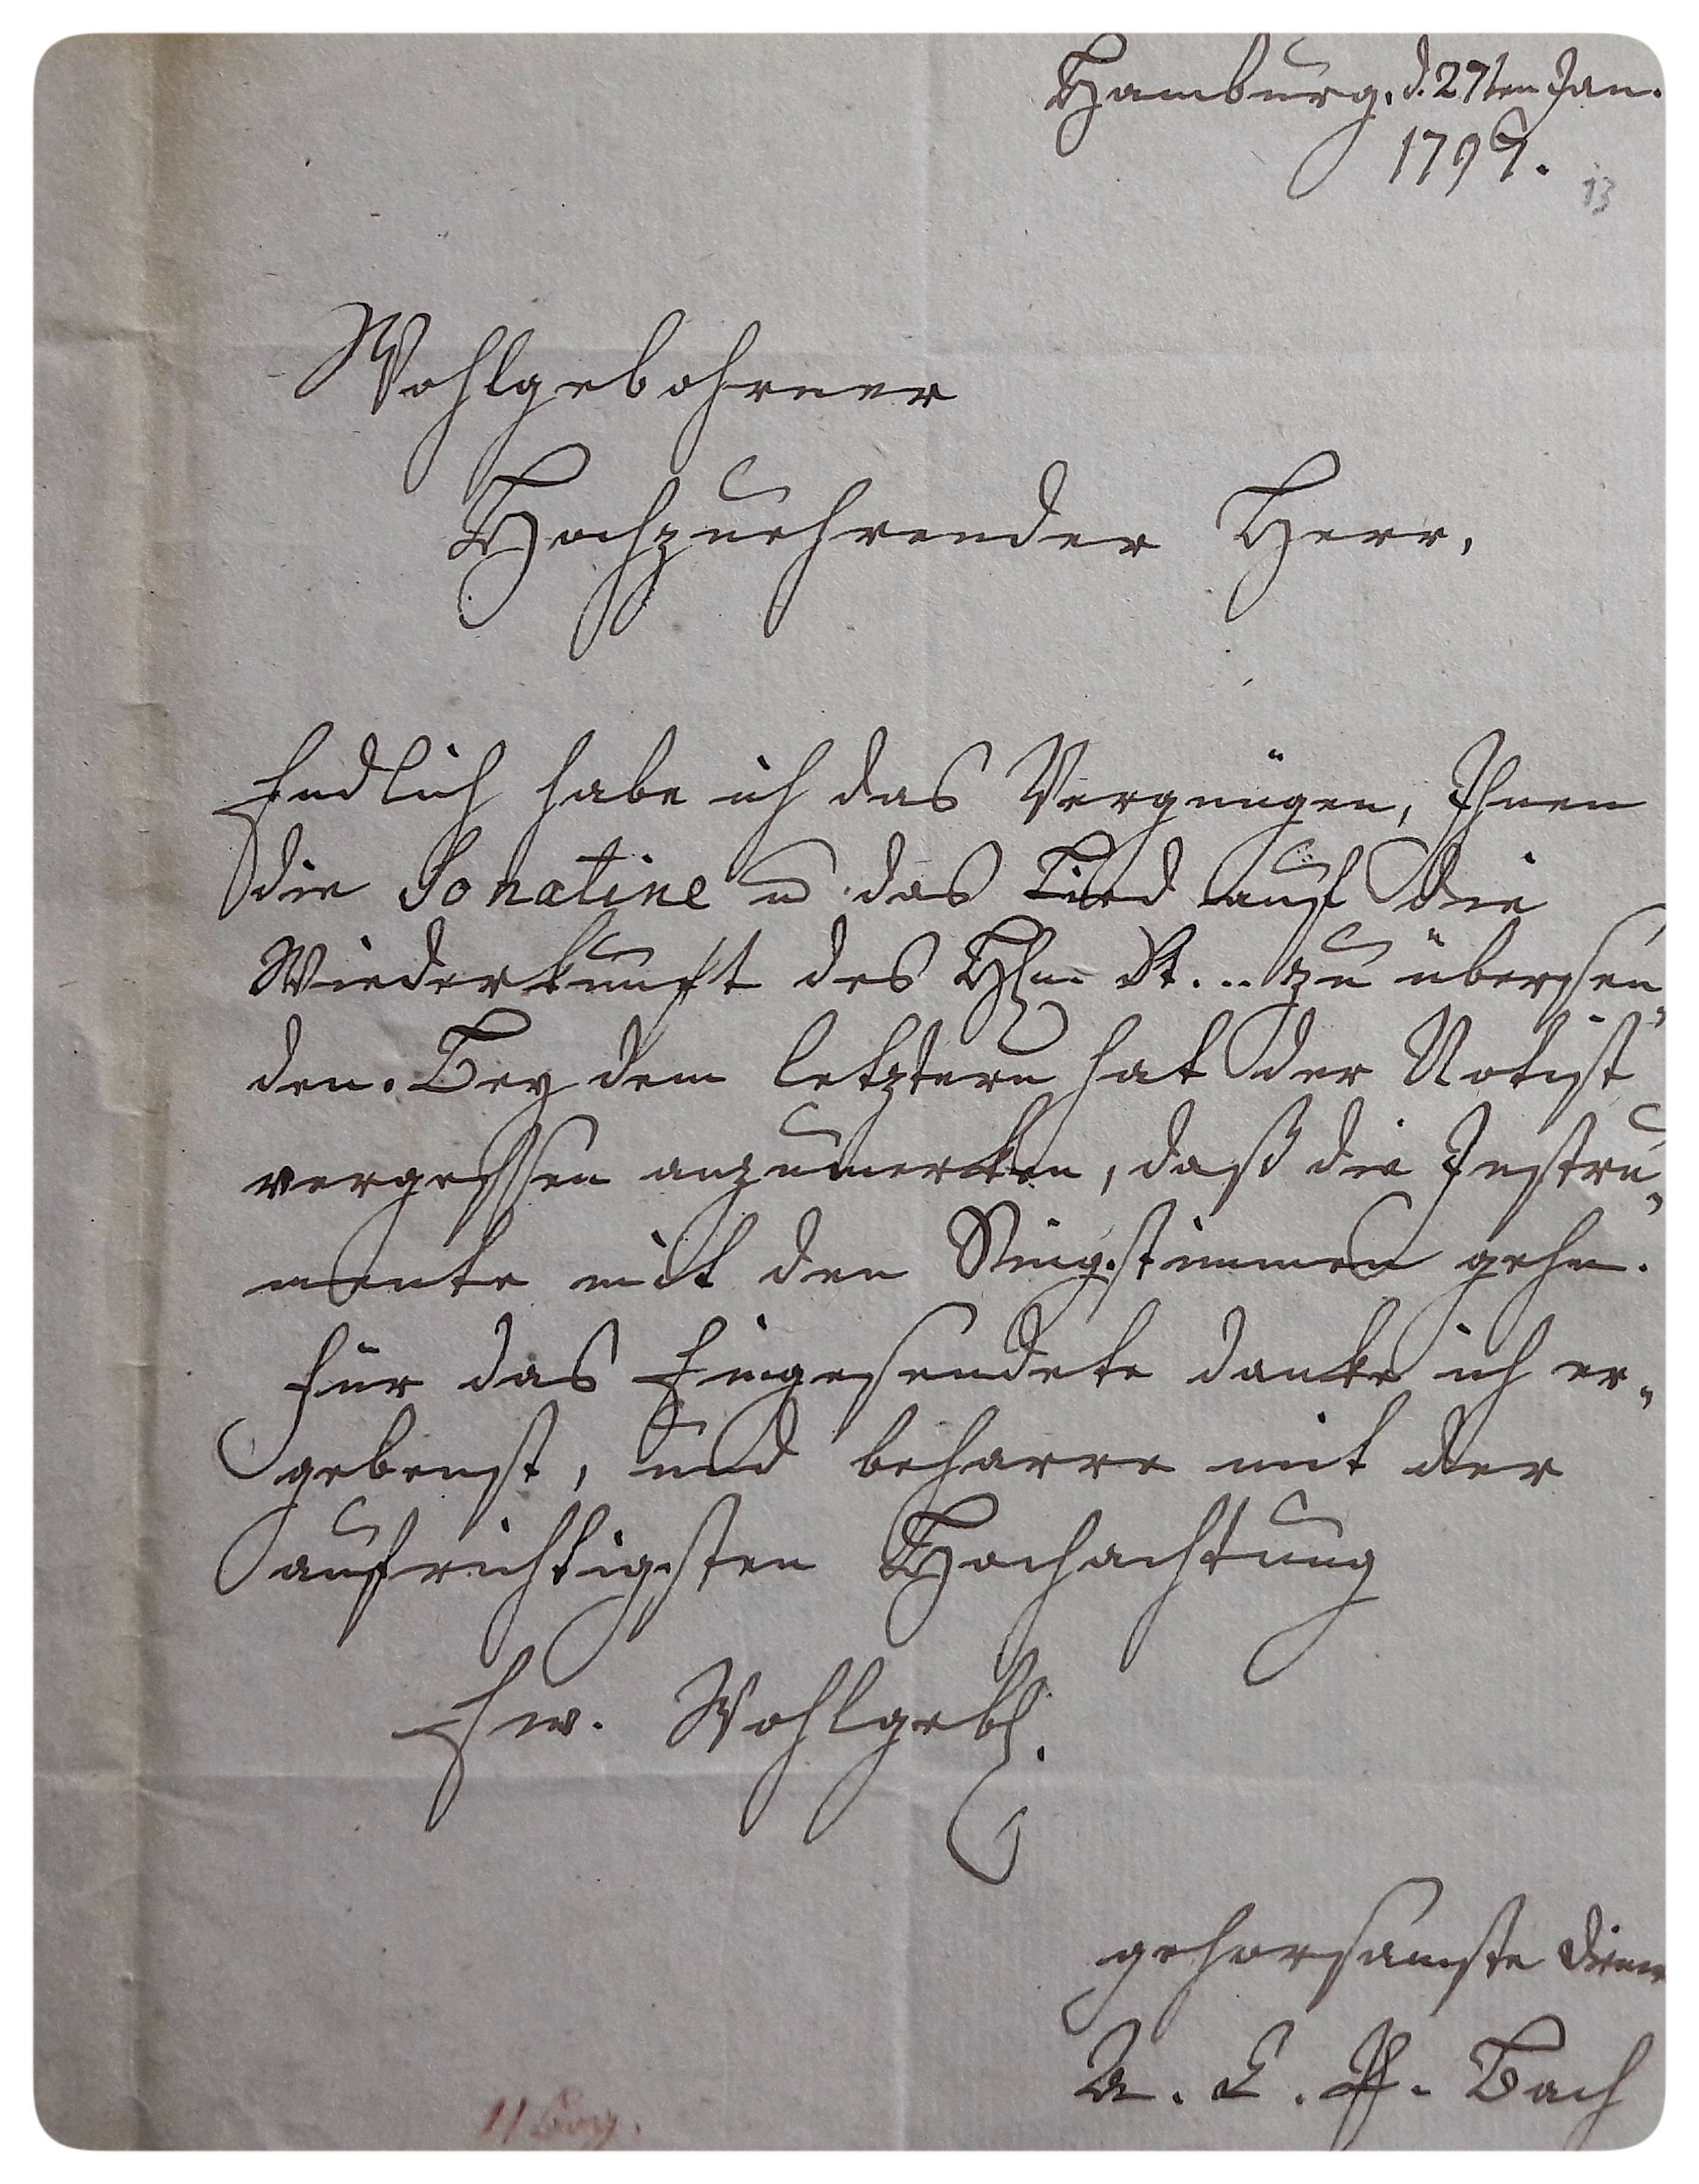 Letter by Anna Carolina Philippina Bach from 27 January 1797